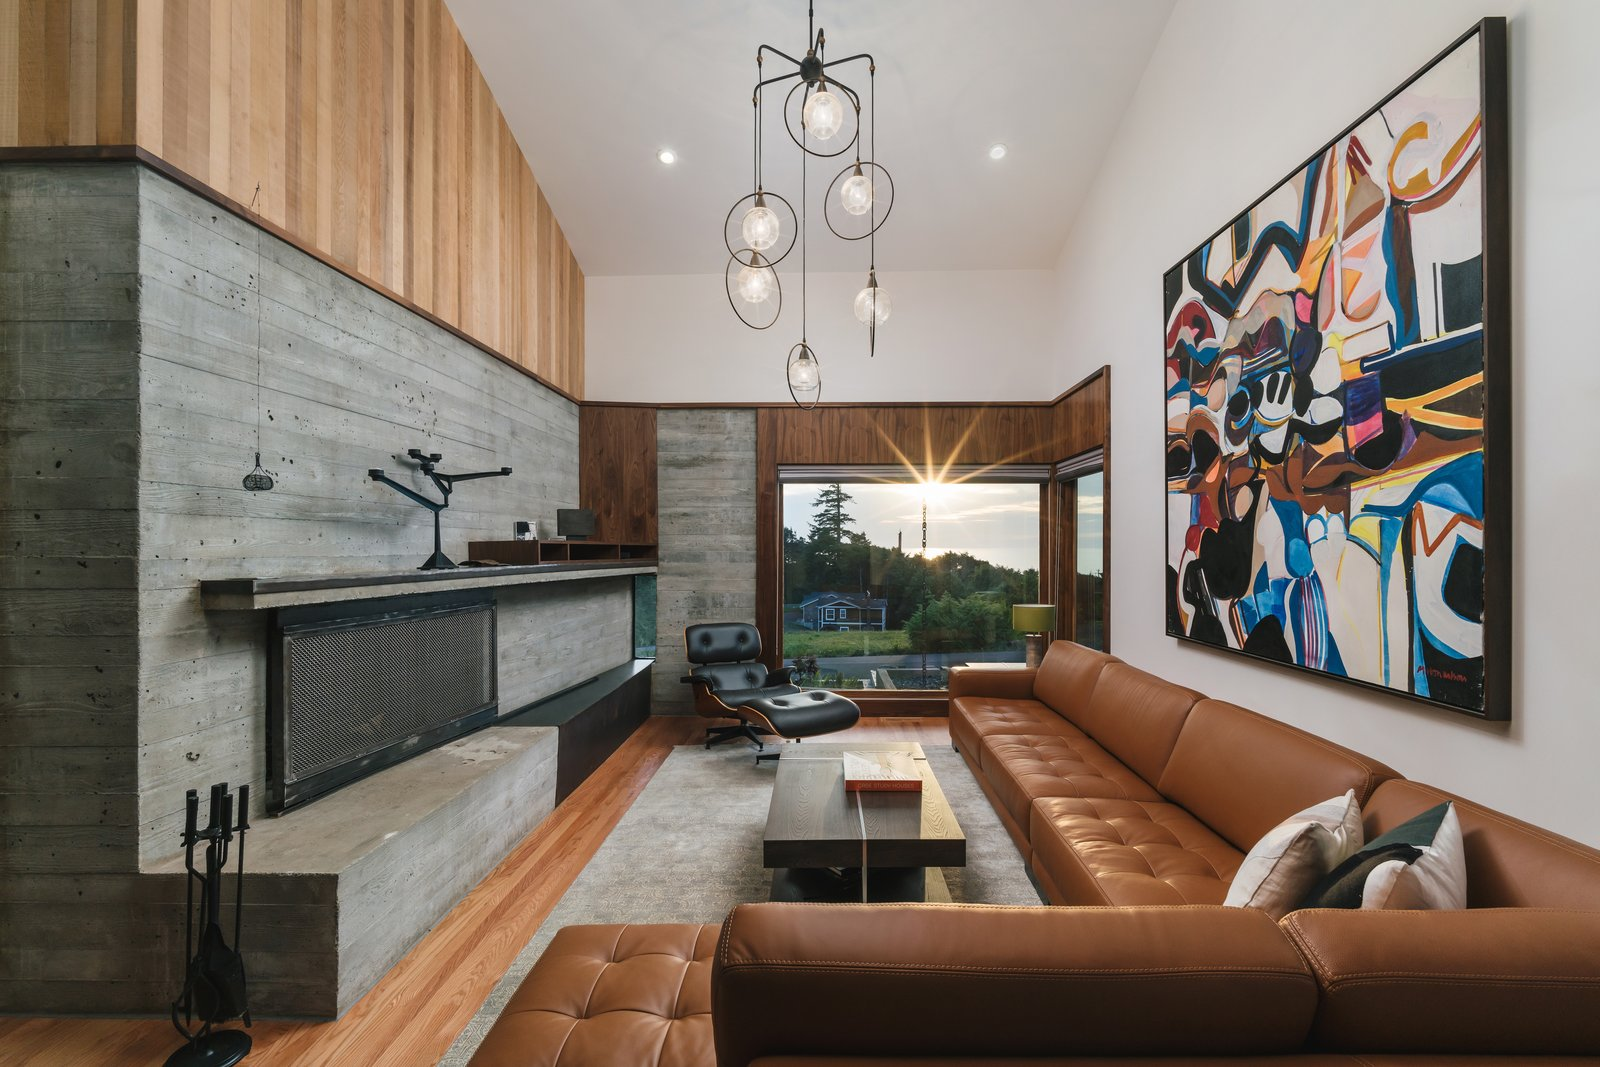 Arch Cape Residence by Colab Architecture + Design living room with board-formed concrete fireplace